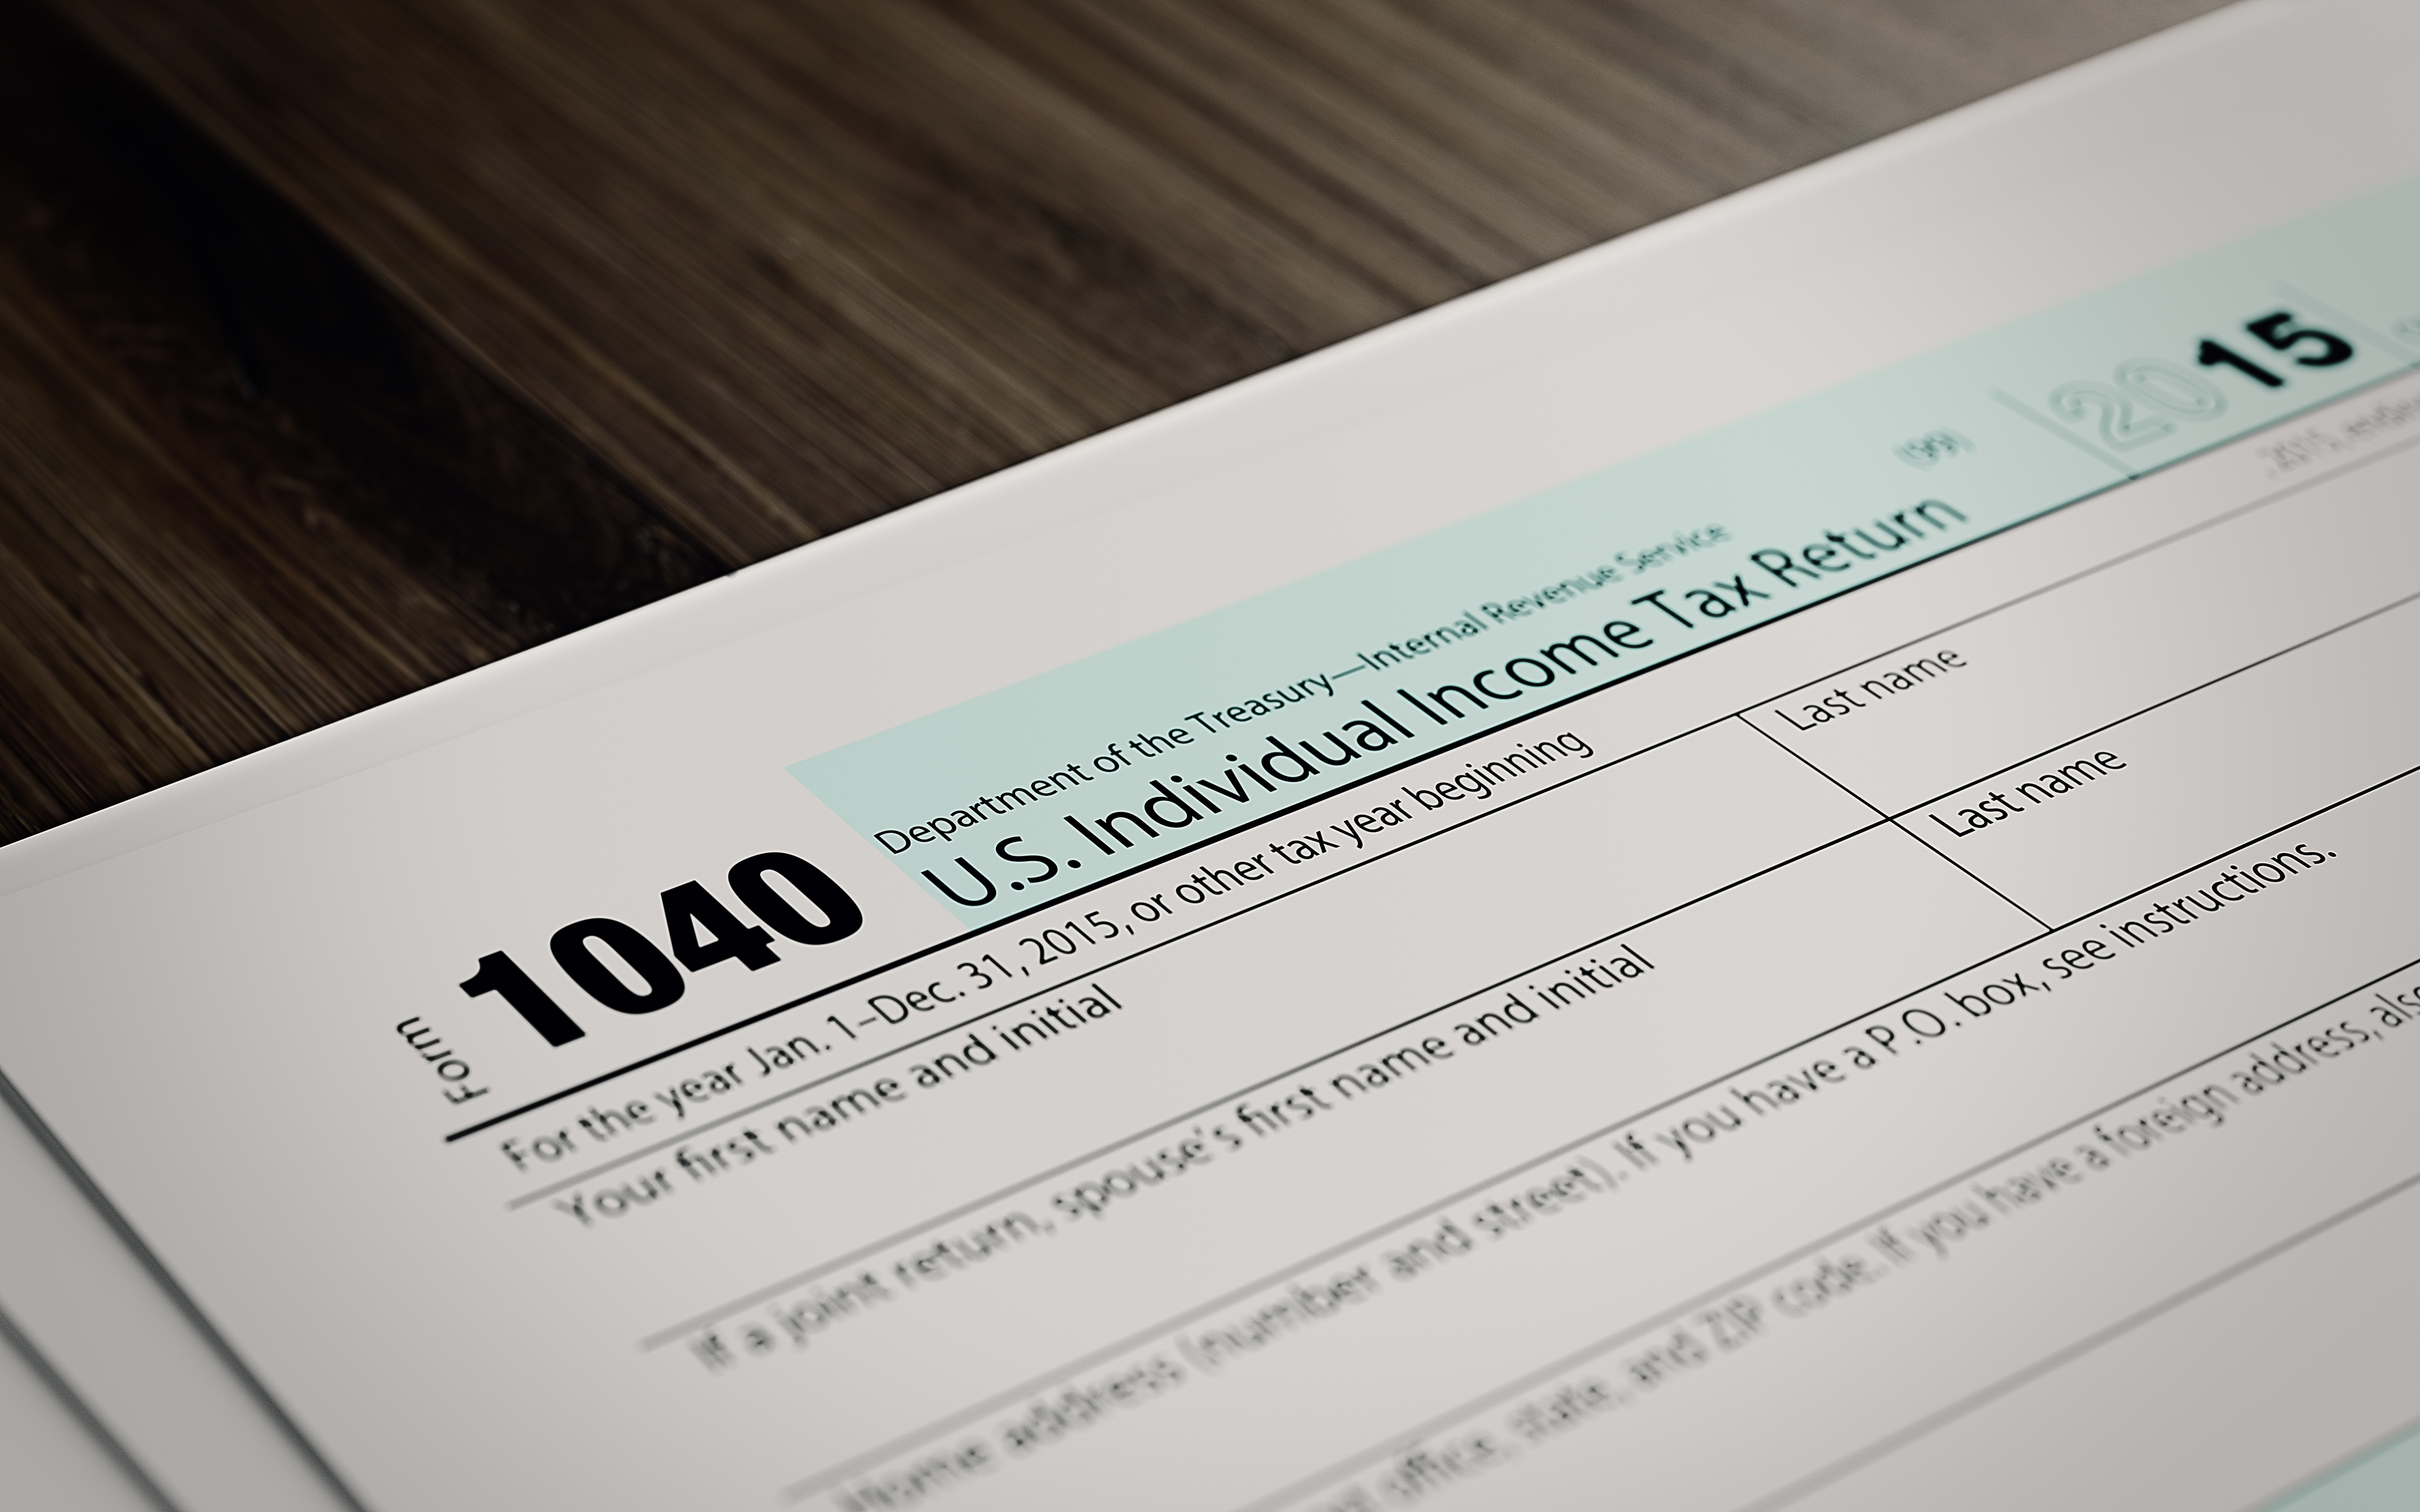 Tax refund form on brown wood surface. Horizontal composition with copy space and selective focus.